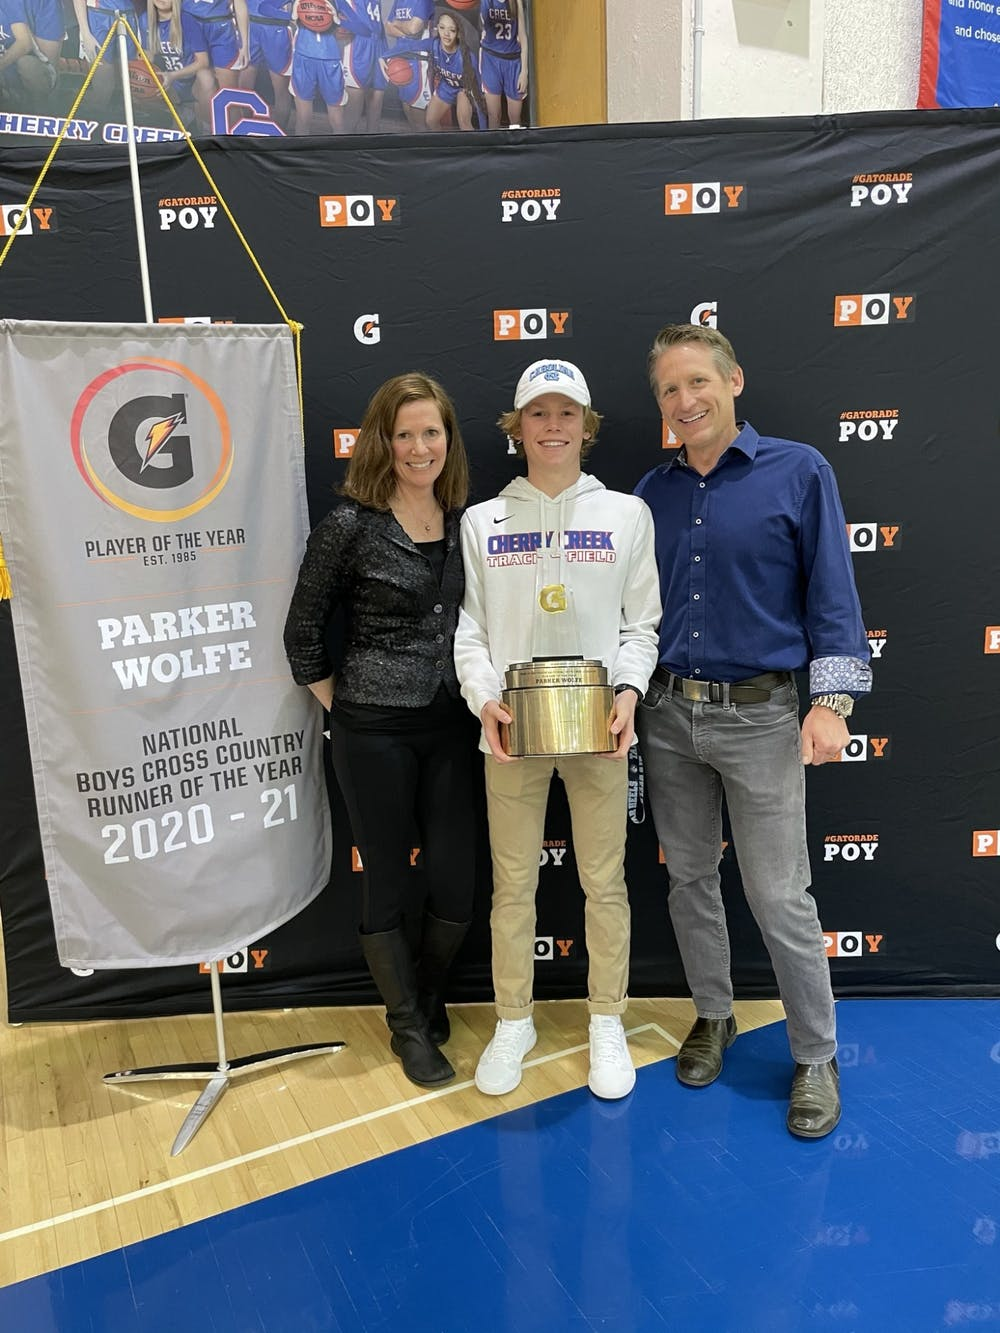 Parker Wolfe, one of UNC track and field's top recruits, smiles with his family after being awarded the Gatorade National Boys Cross Country Runner of the Year at Cherry Creek High School. Photo courtesy of Luke Akinsola.